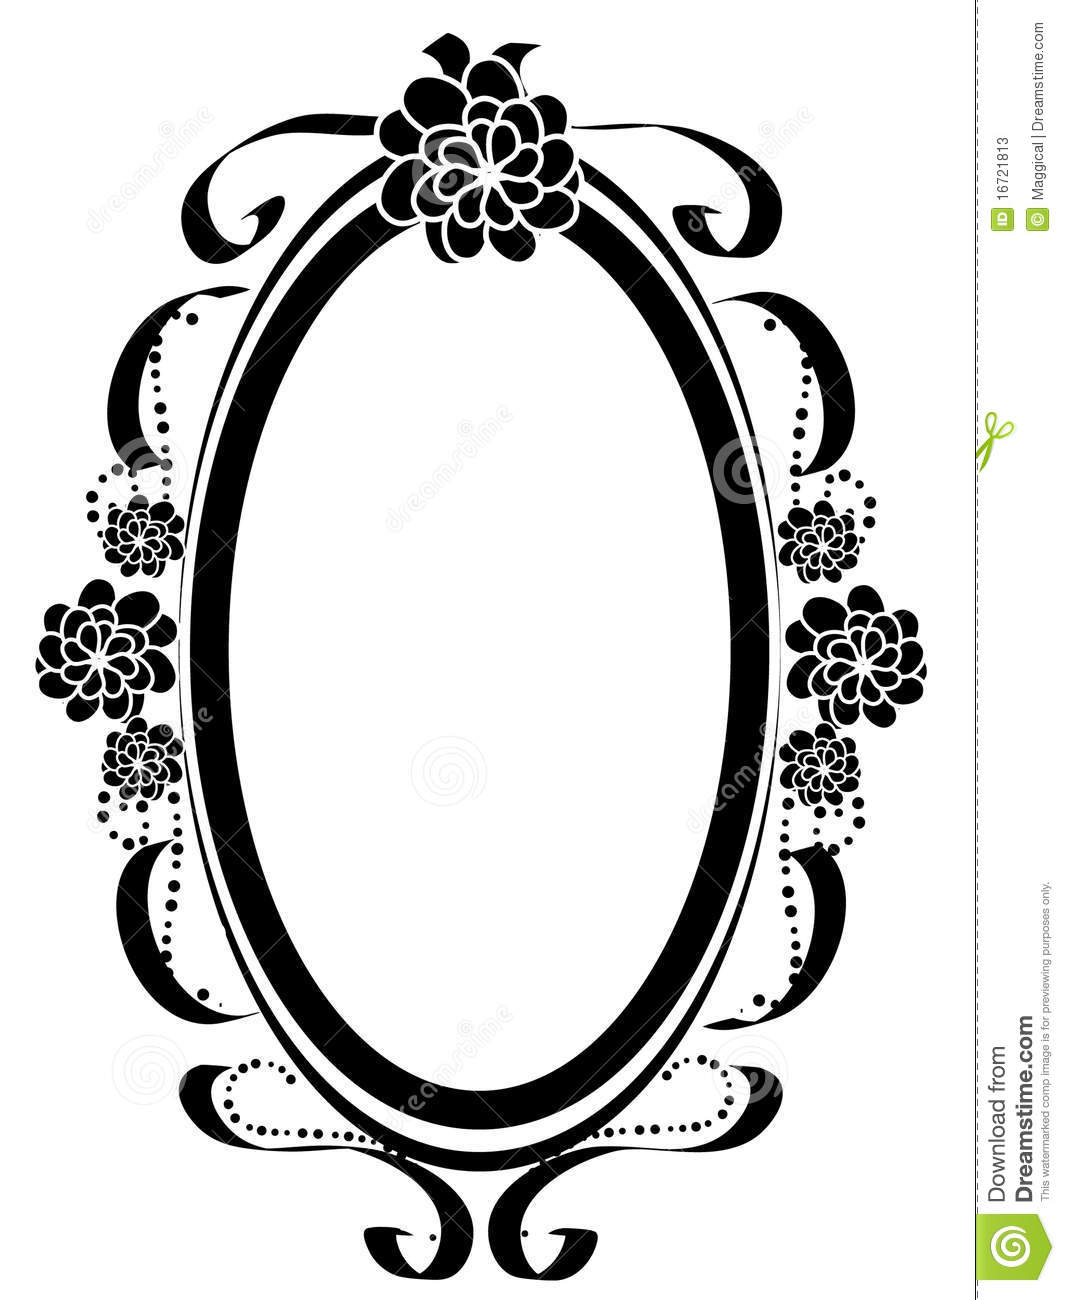 Silhouette Of A Frame Stock Vector Illustration Of Pretty